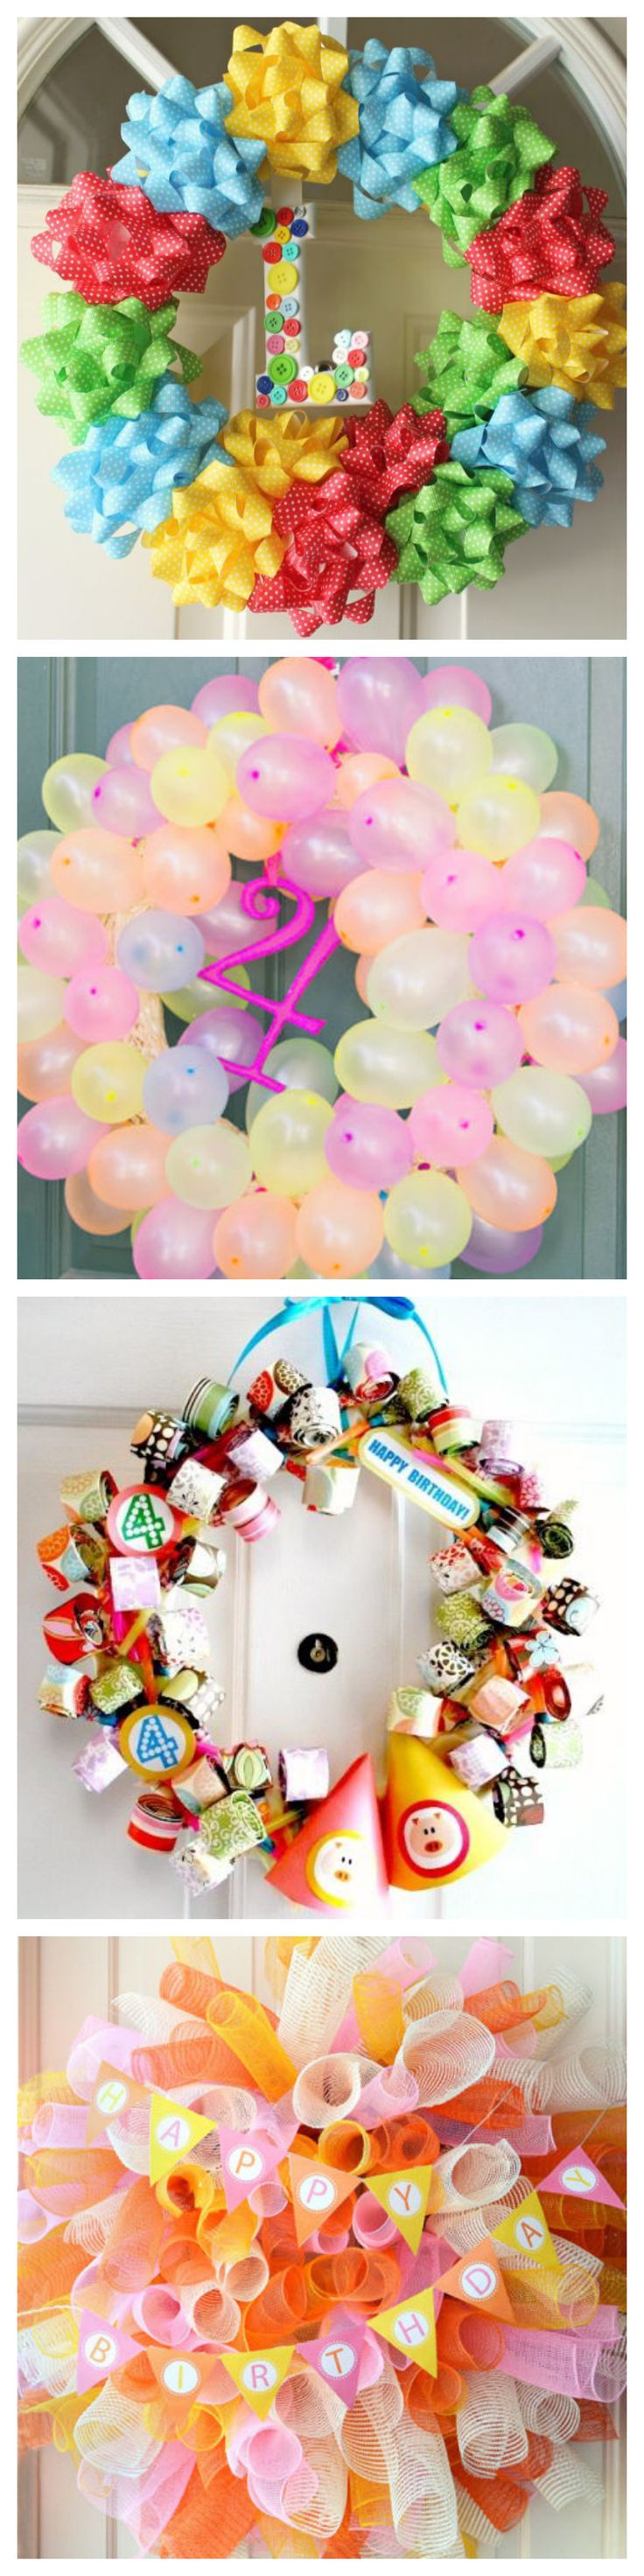 Homemade Birthday Party Wreaths #DIY #partyideas